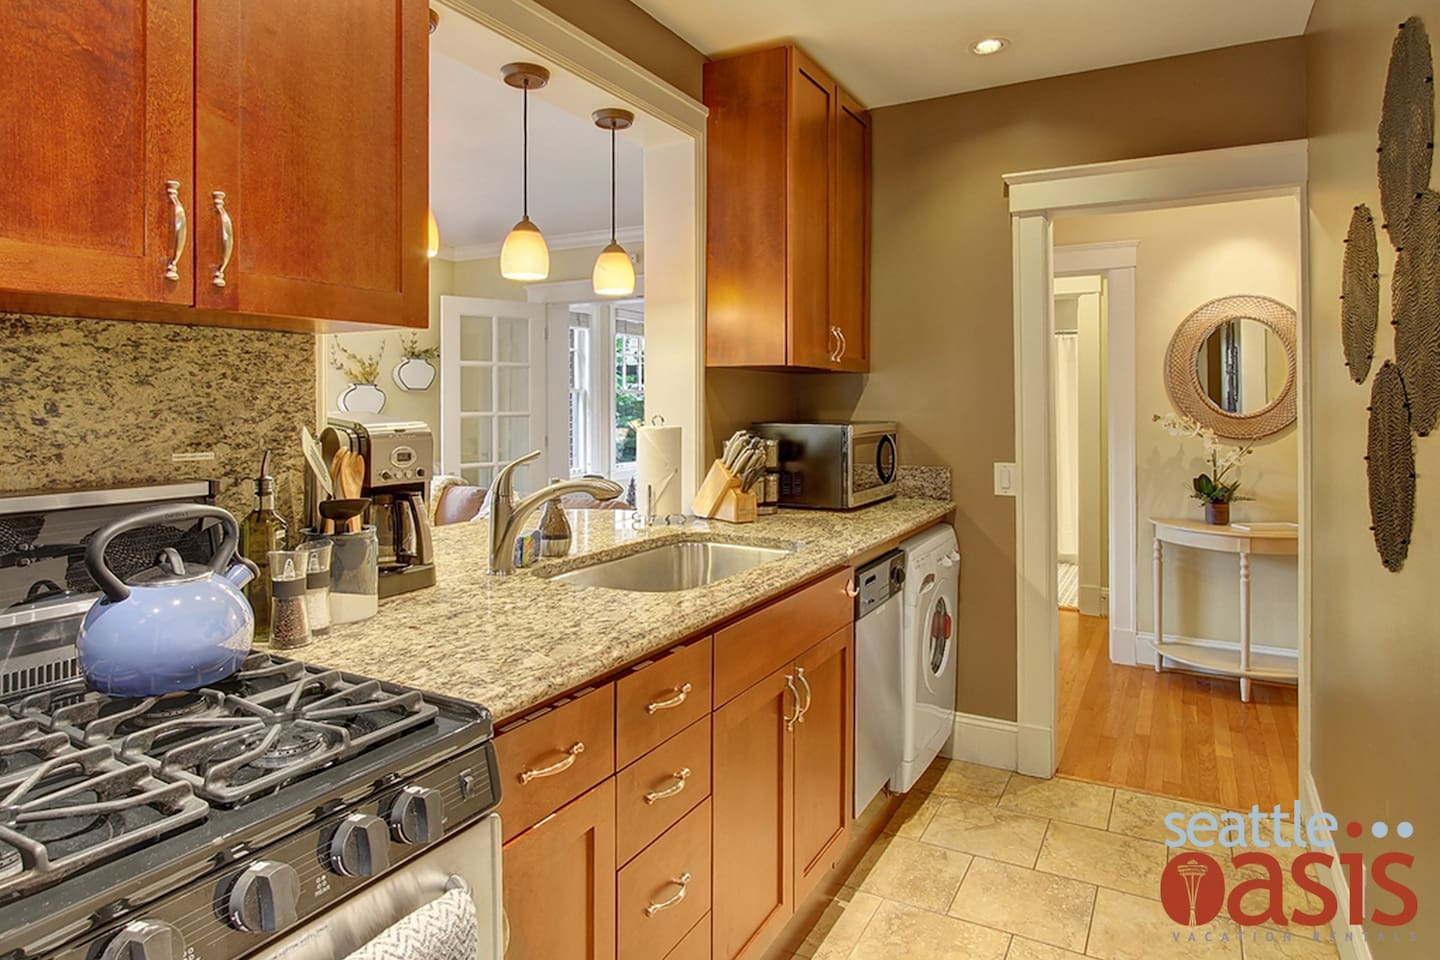 Kitchen cabinets to go kent wa - August 1 4 2 Bedroom Classic Brownstone Oasis Apartments For Rent In Seattle Washington United States